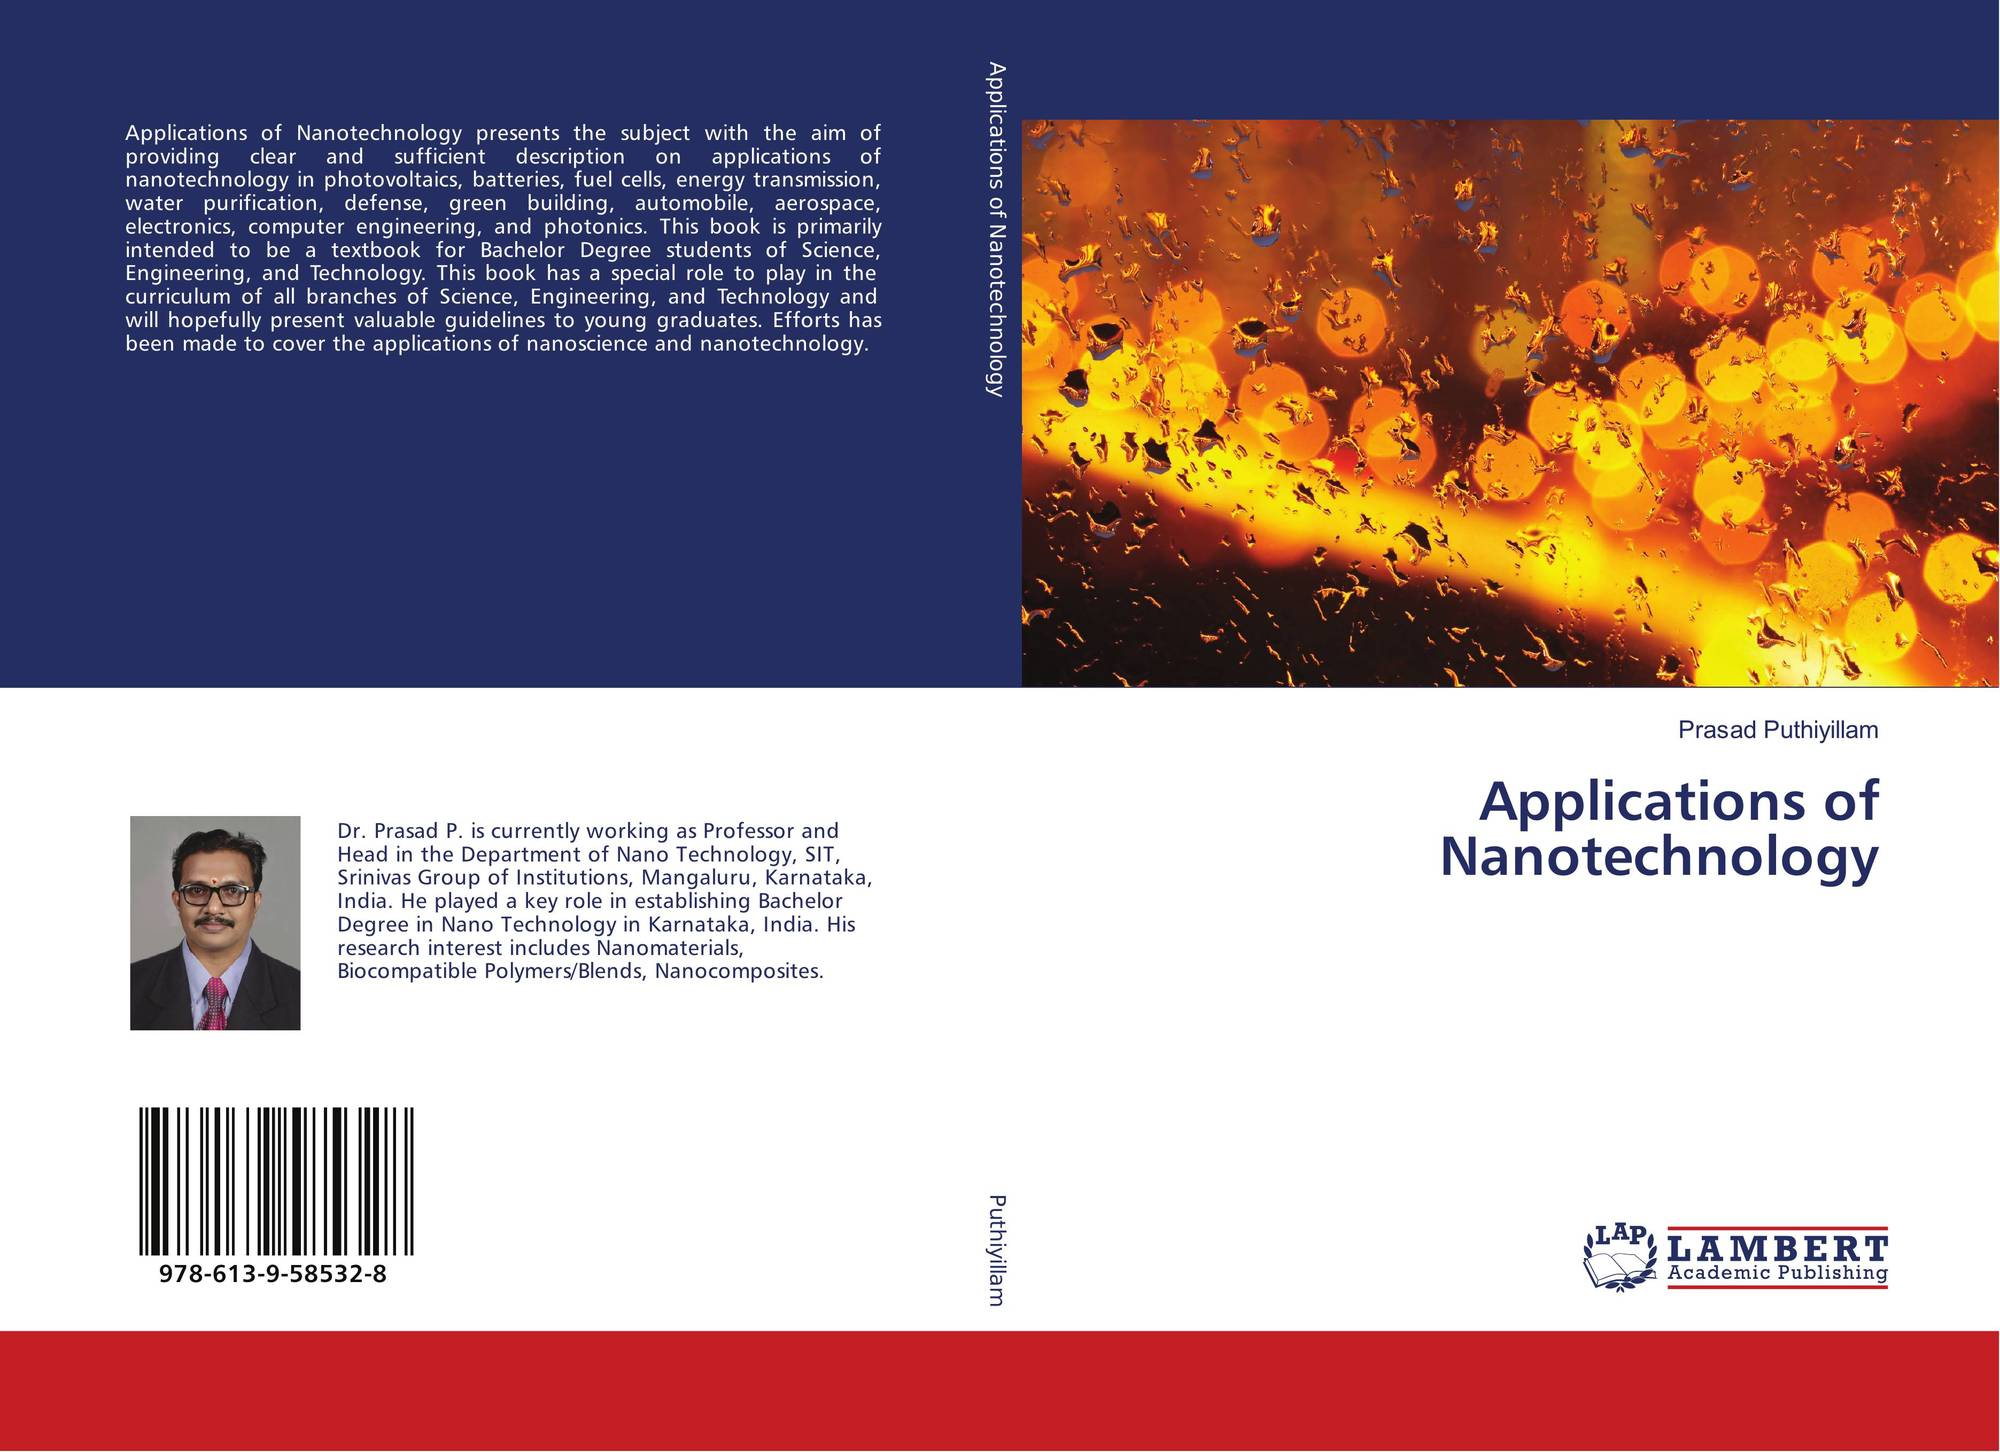 Applications of Nanotechnology, 978-613-9-58532-8